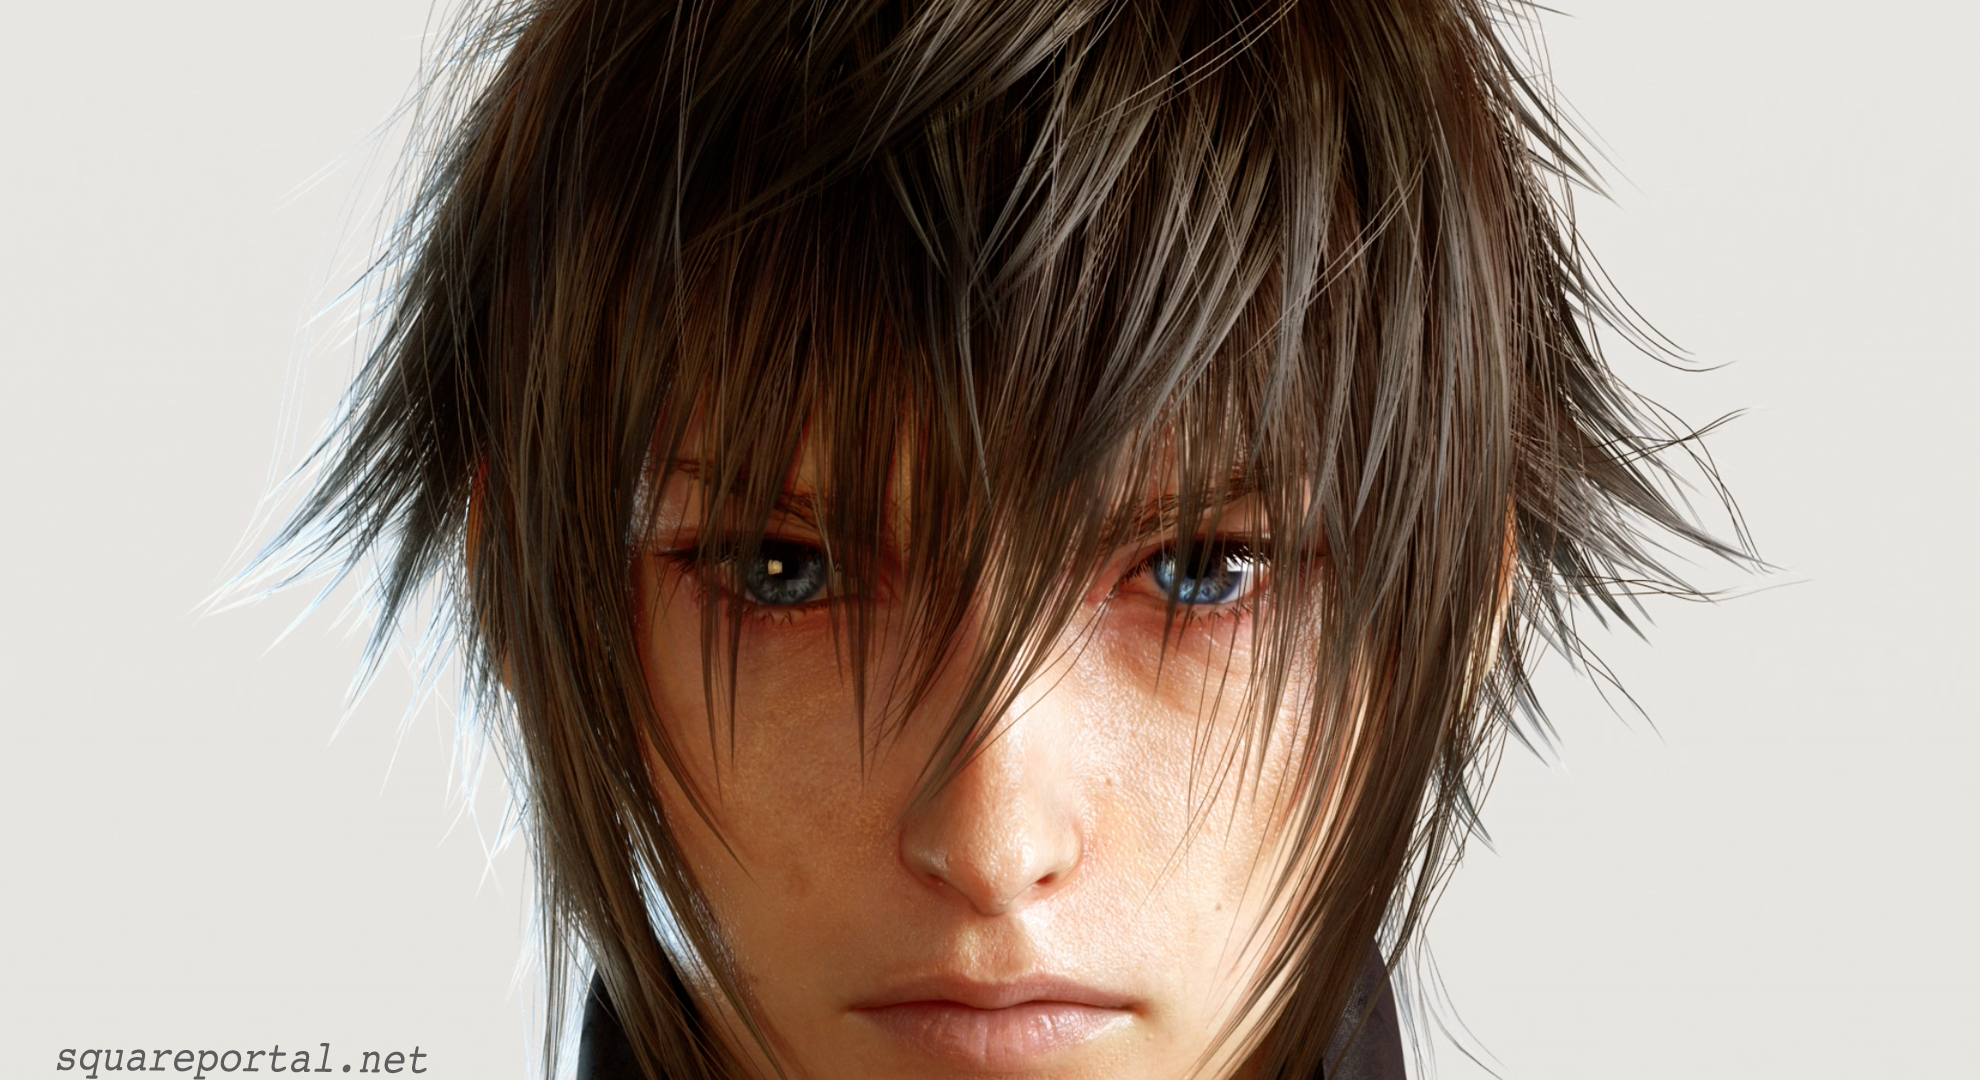 75 Noctis Lucis Caelum Hd Wallpapers Background Images